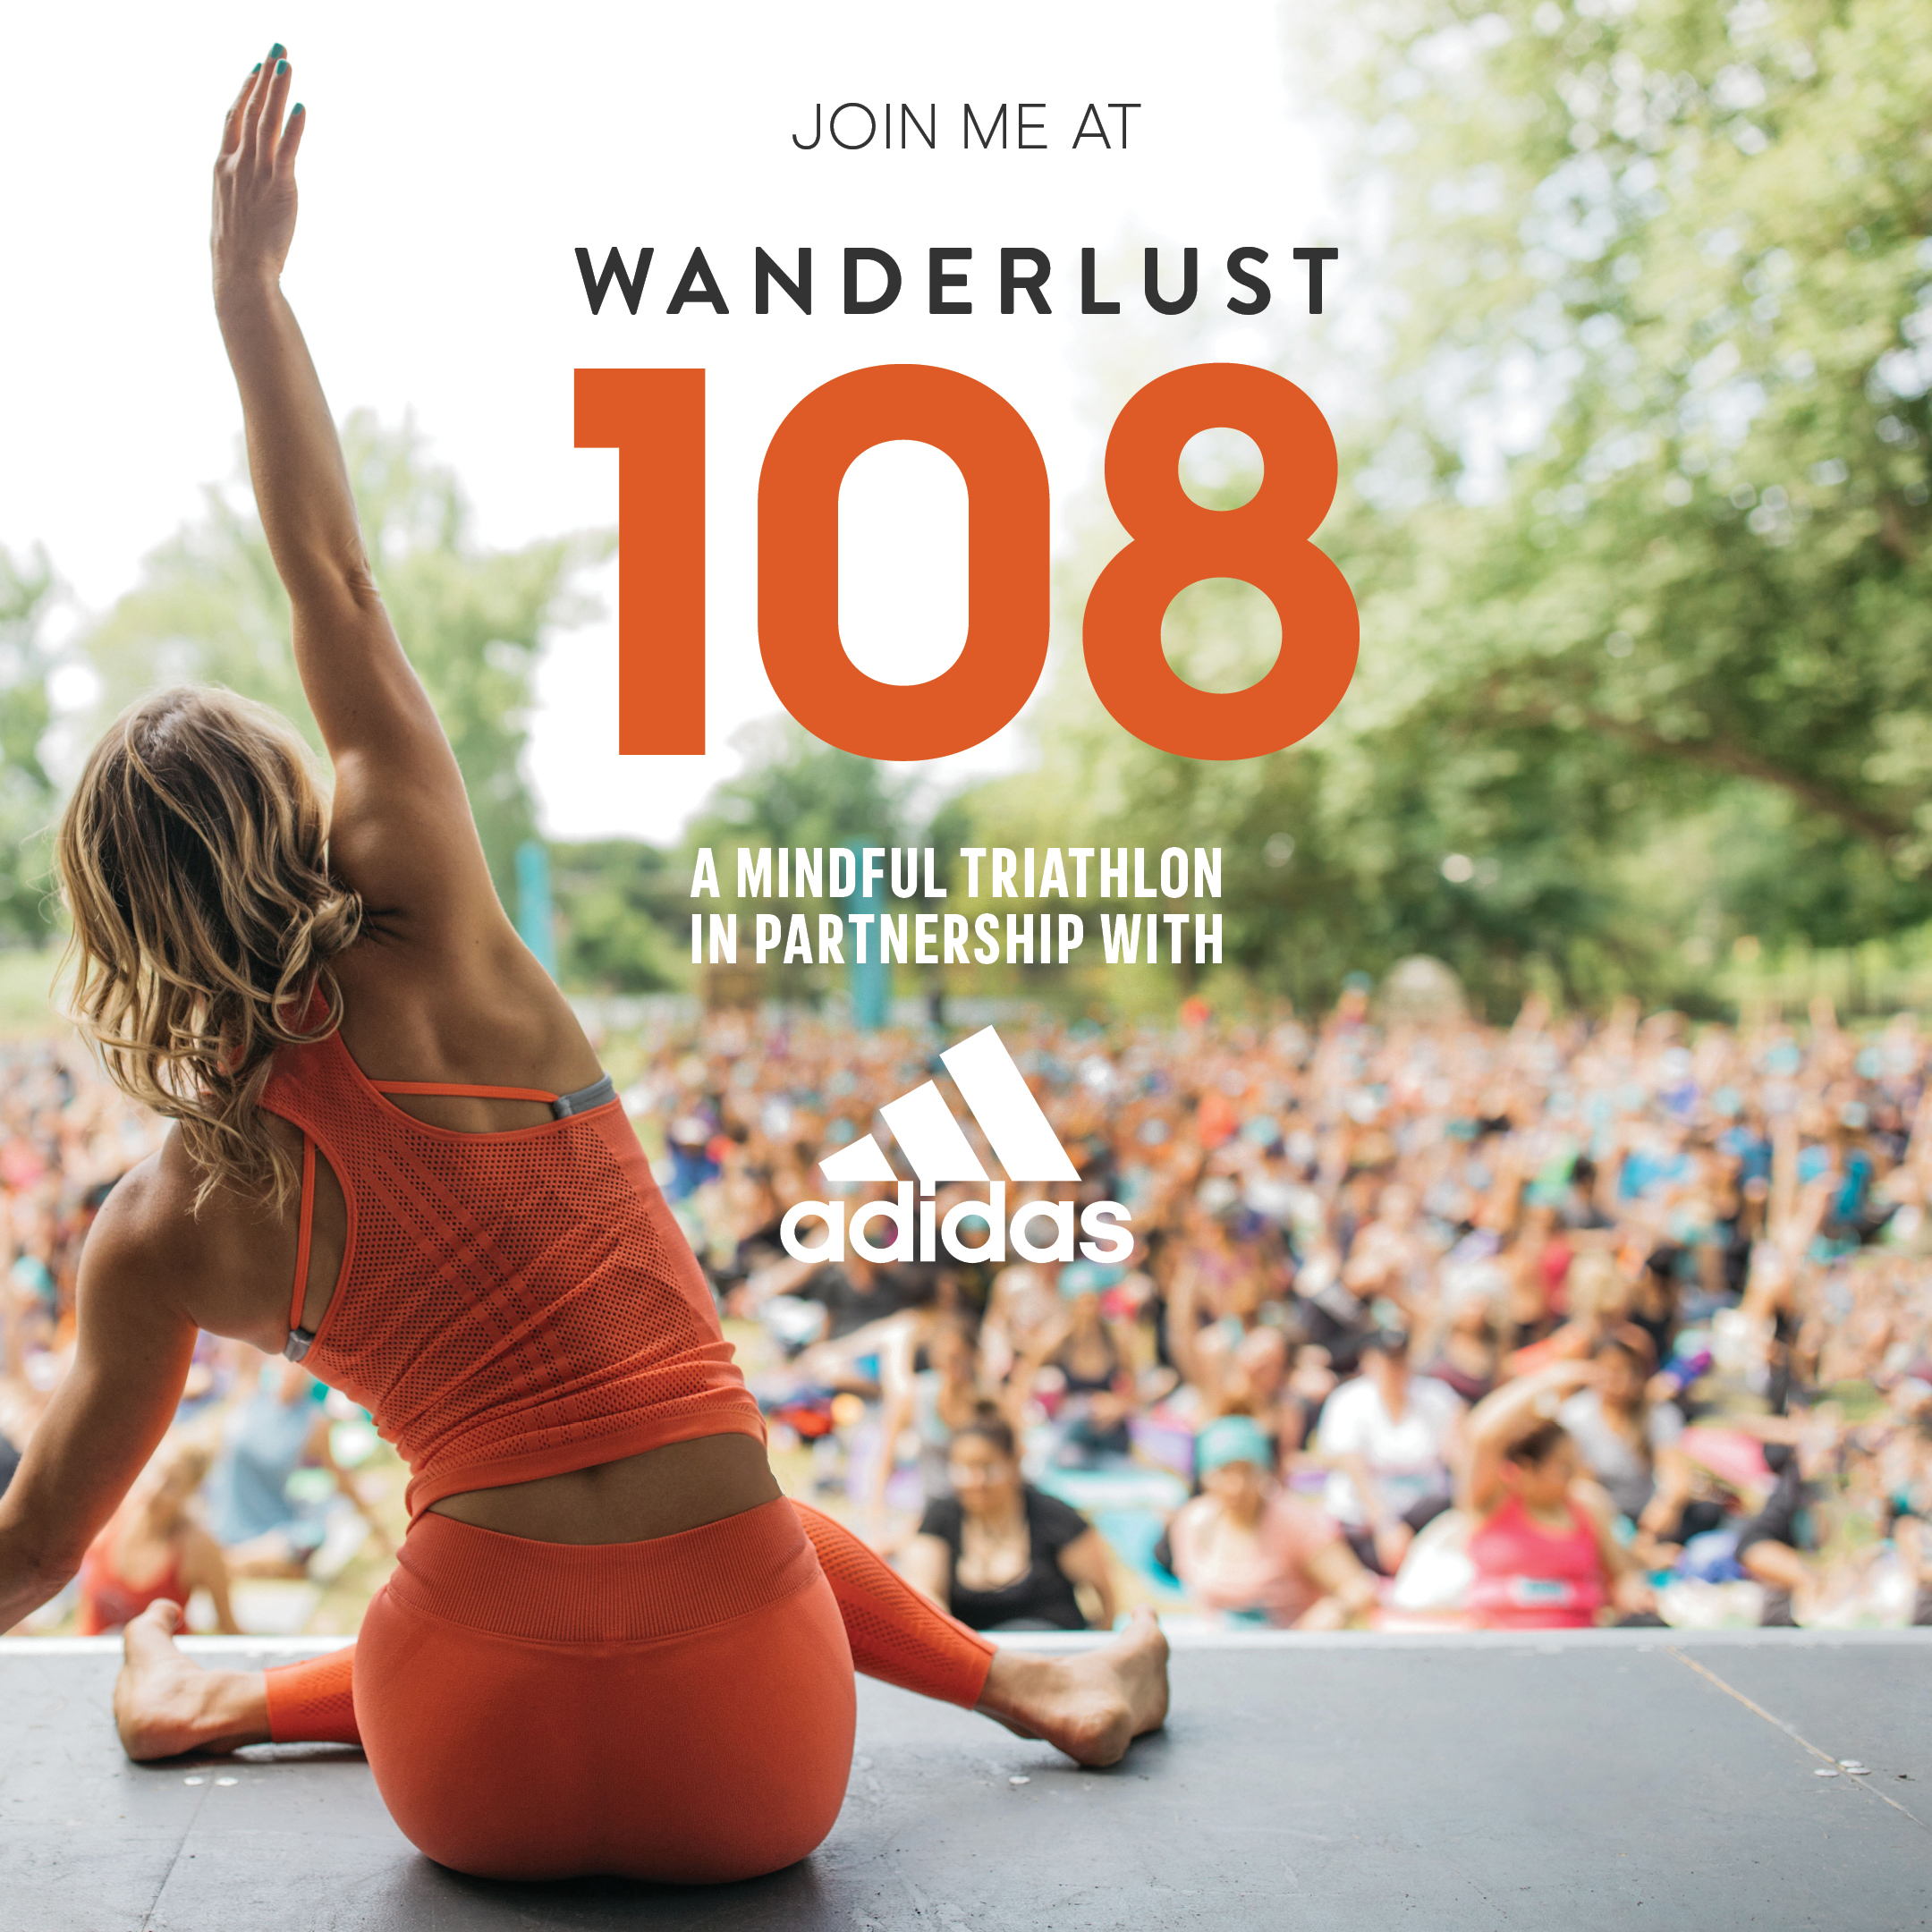 Join Me At Wanderlust 108 London.jpg